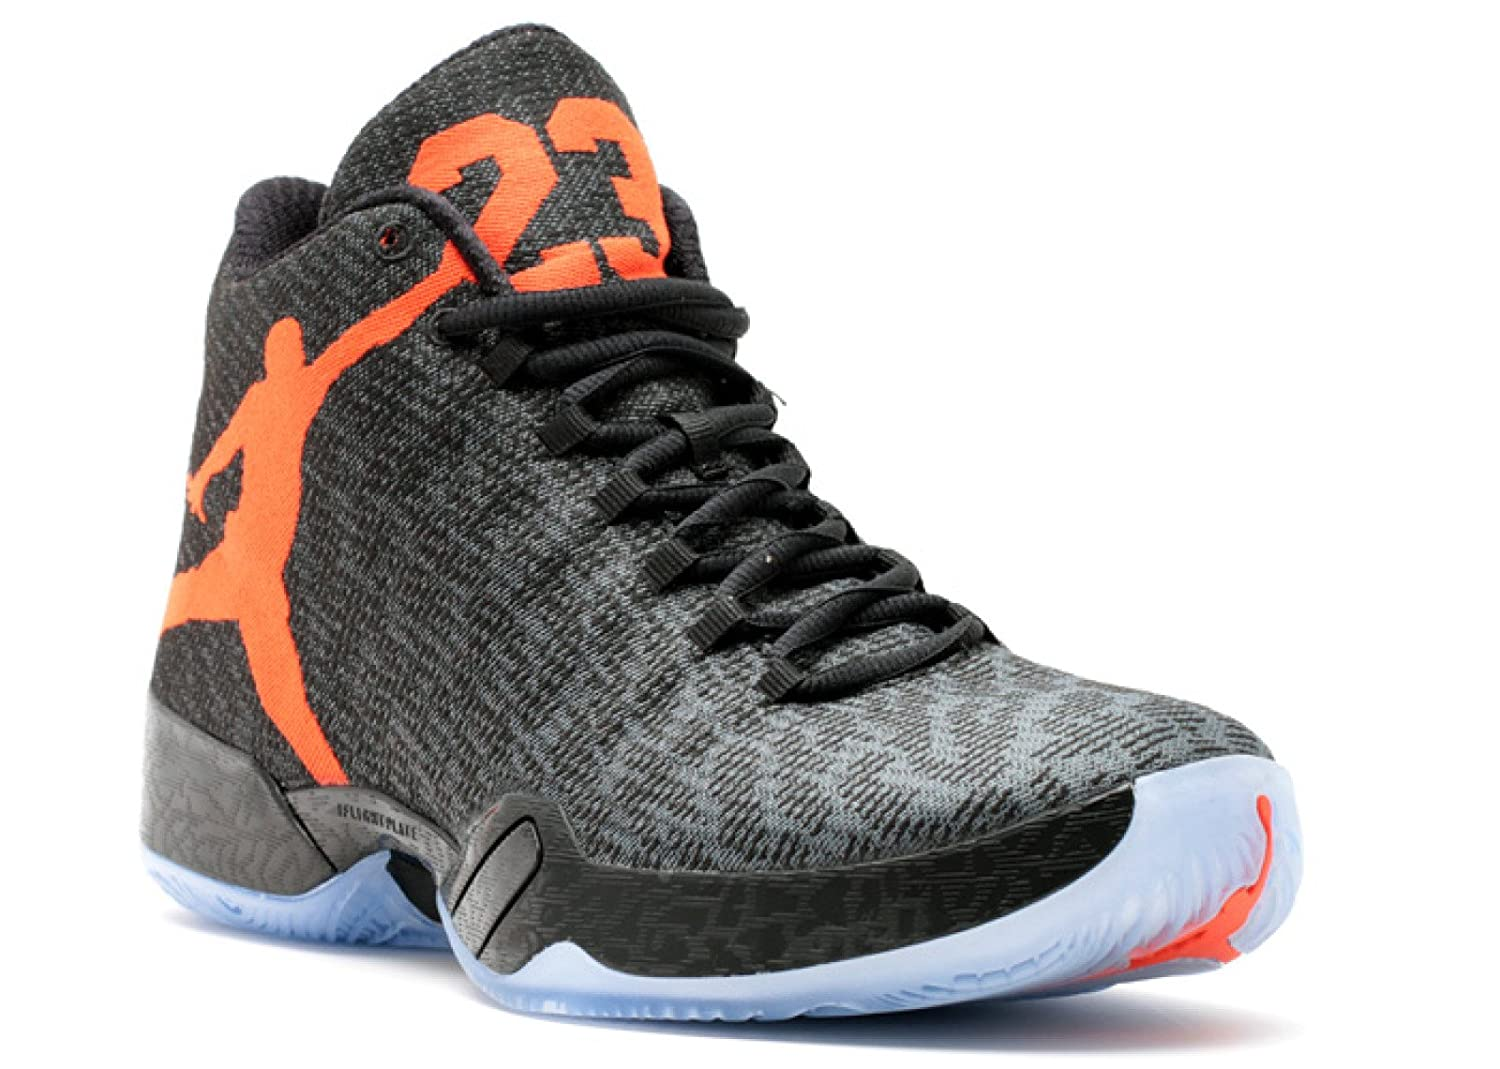 official photos 50bf0 604f4 Jordan Mens AIR XX9 BLACK/DARK GREY/TEAM ORANGE 695515-005 9